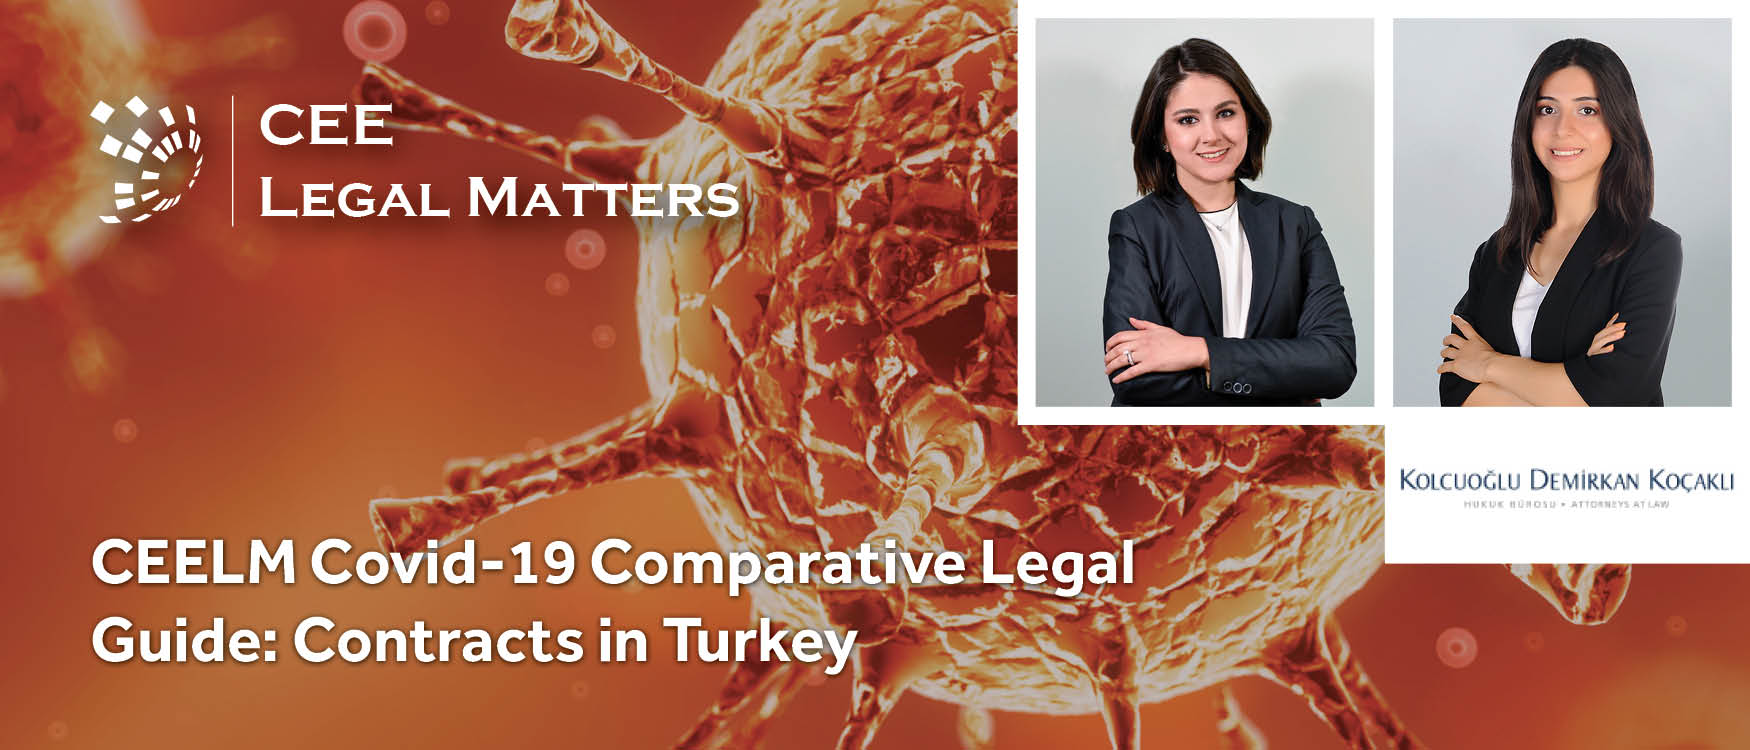 CEELM Covid-19 Comparative Legal Guide: Contracts in Turkey